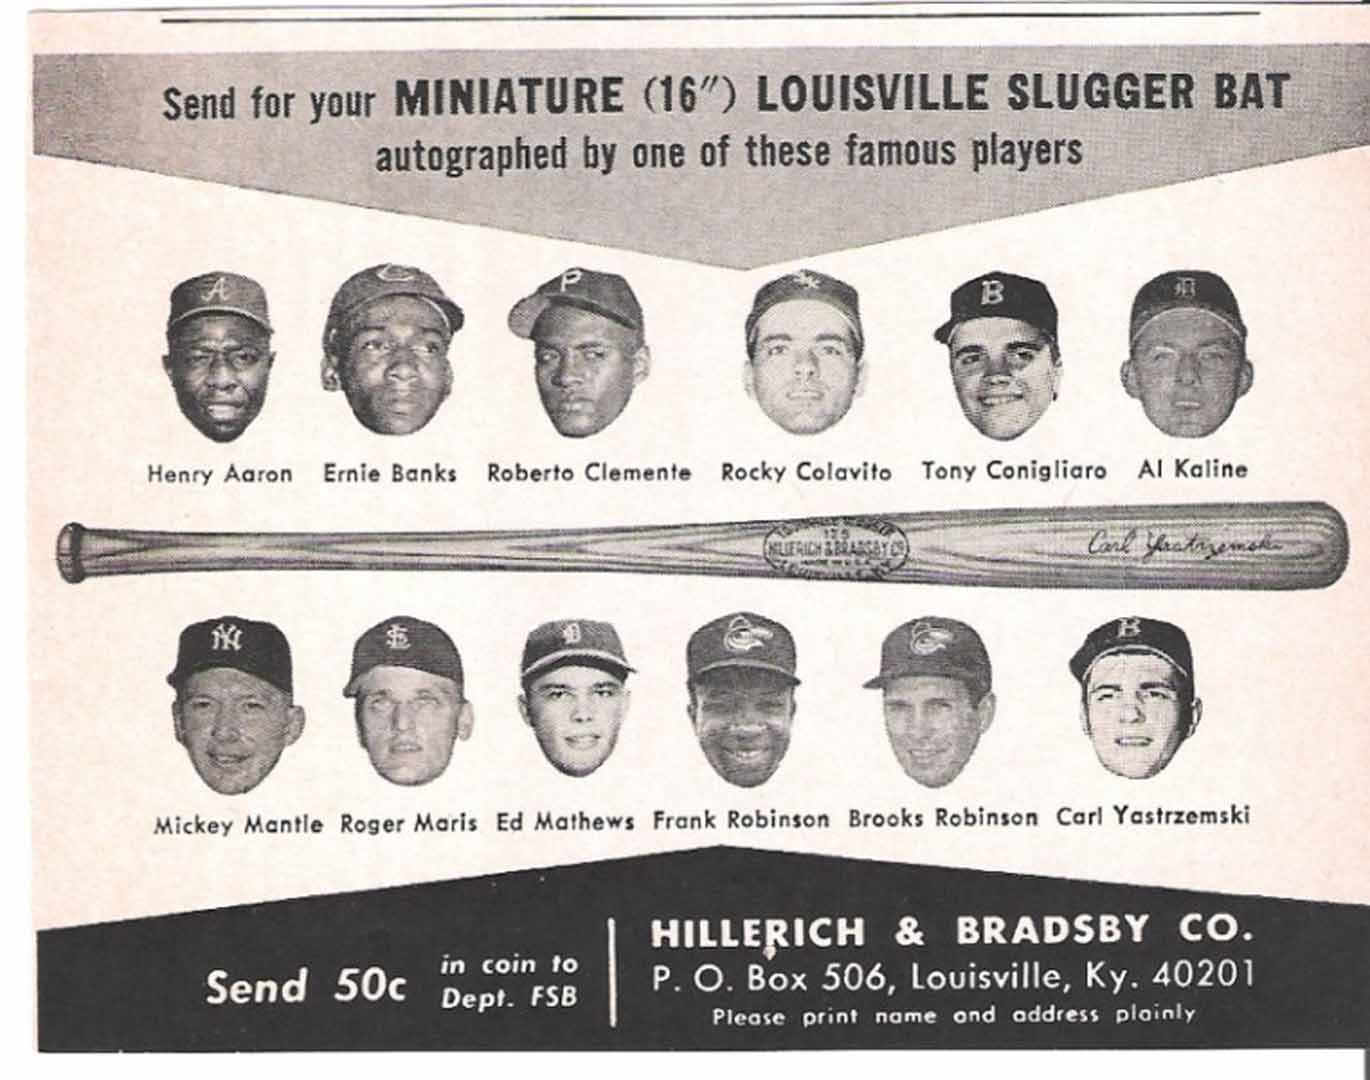 1968 h and b famous sluggers